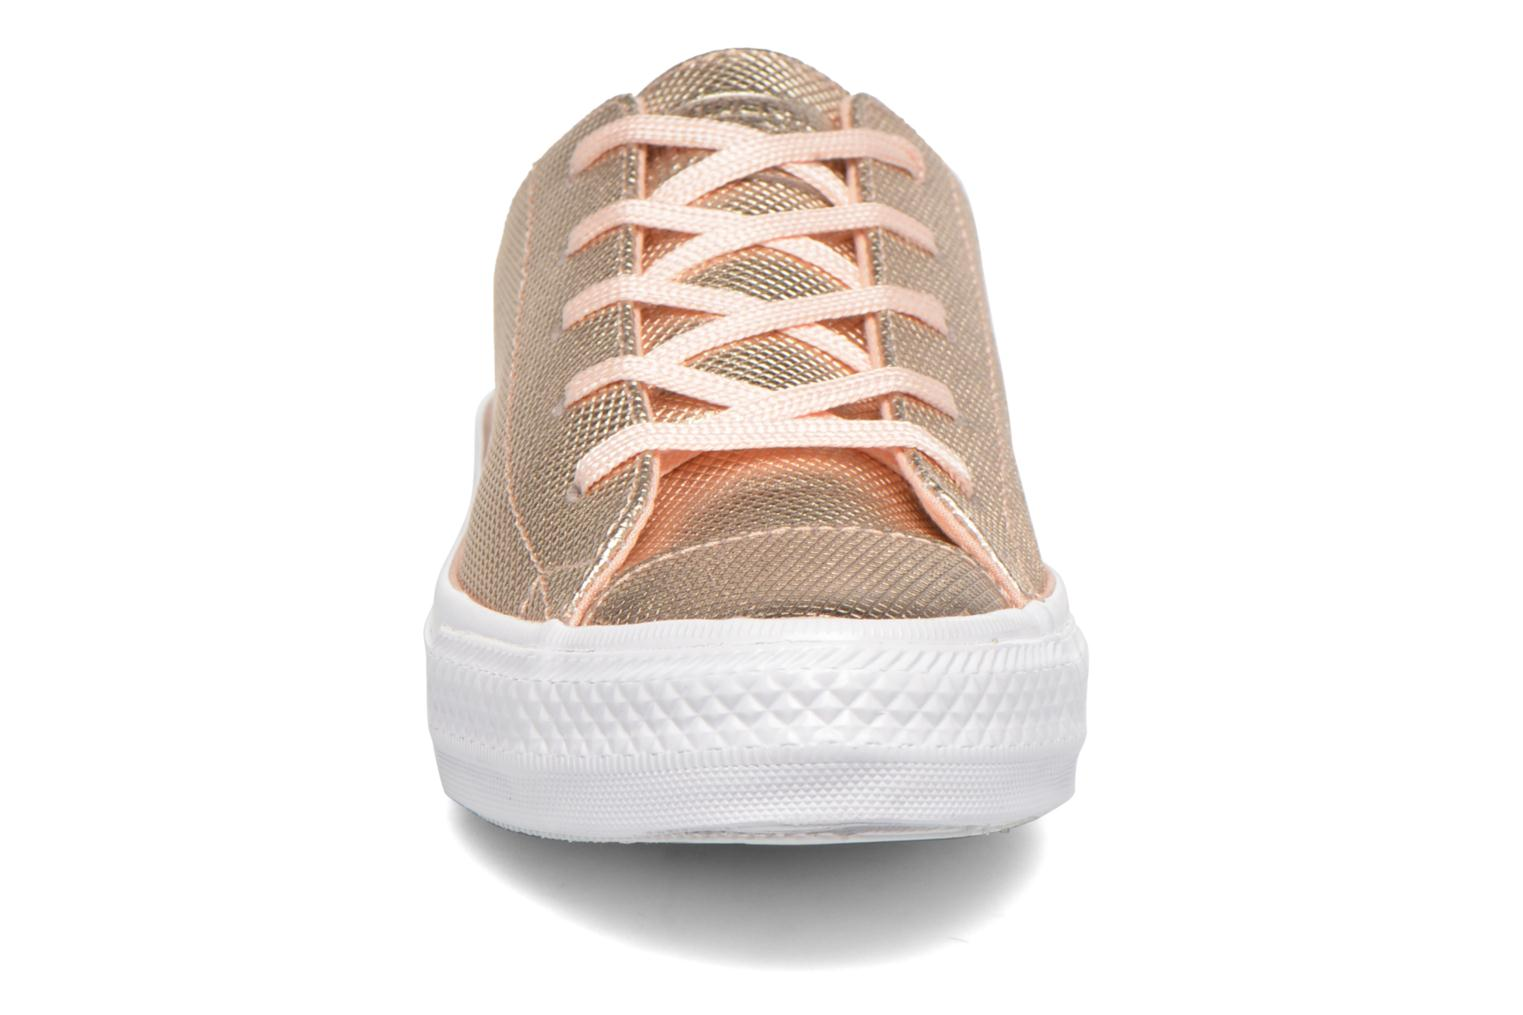 Baskets Converse Ctas Gemma Diamond Foil Leather Ox Rose vue portées chaussures